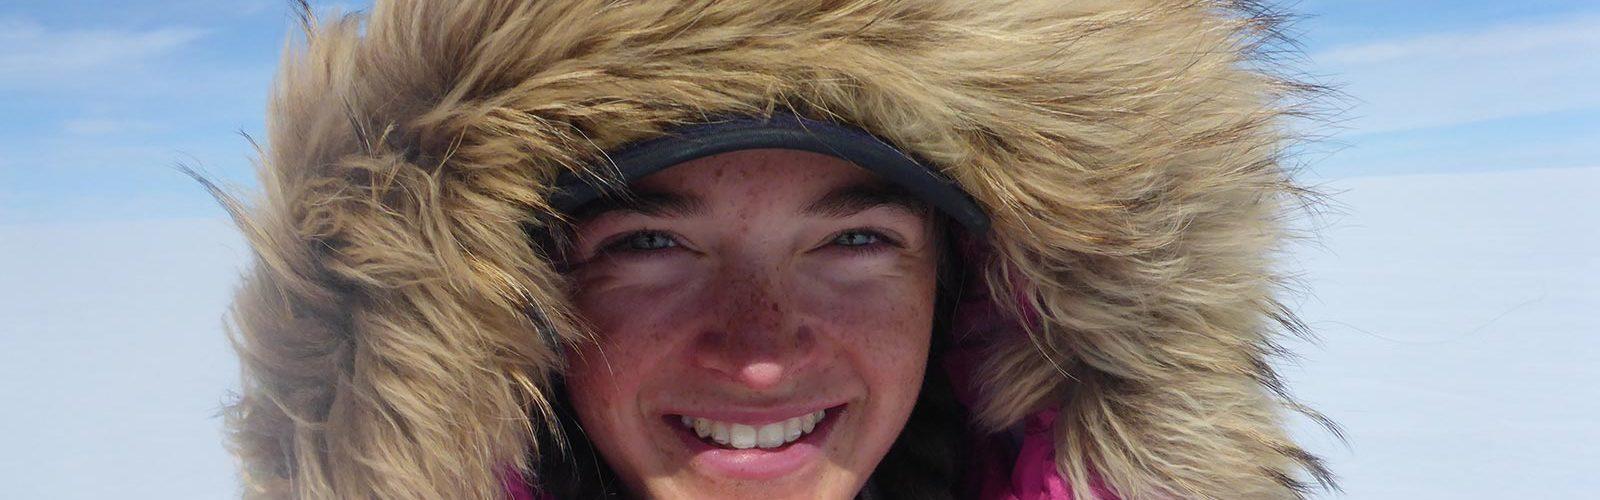 Jade Hameister, 16, starts her third and final trek to the South Pole on December 6. In 2016, she skiied to the North Pole and in June 2017 she walked across the Greenland ice cap, seen here. Photo: WTFN Entertainment